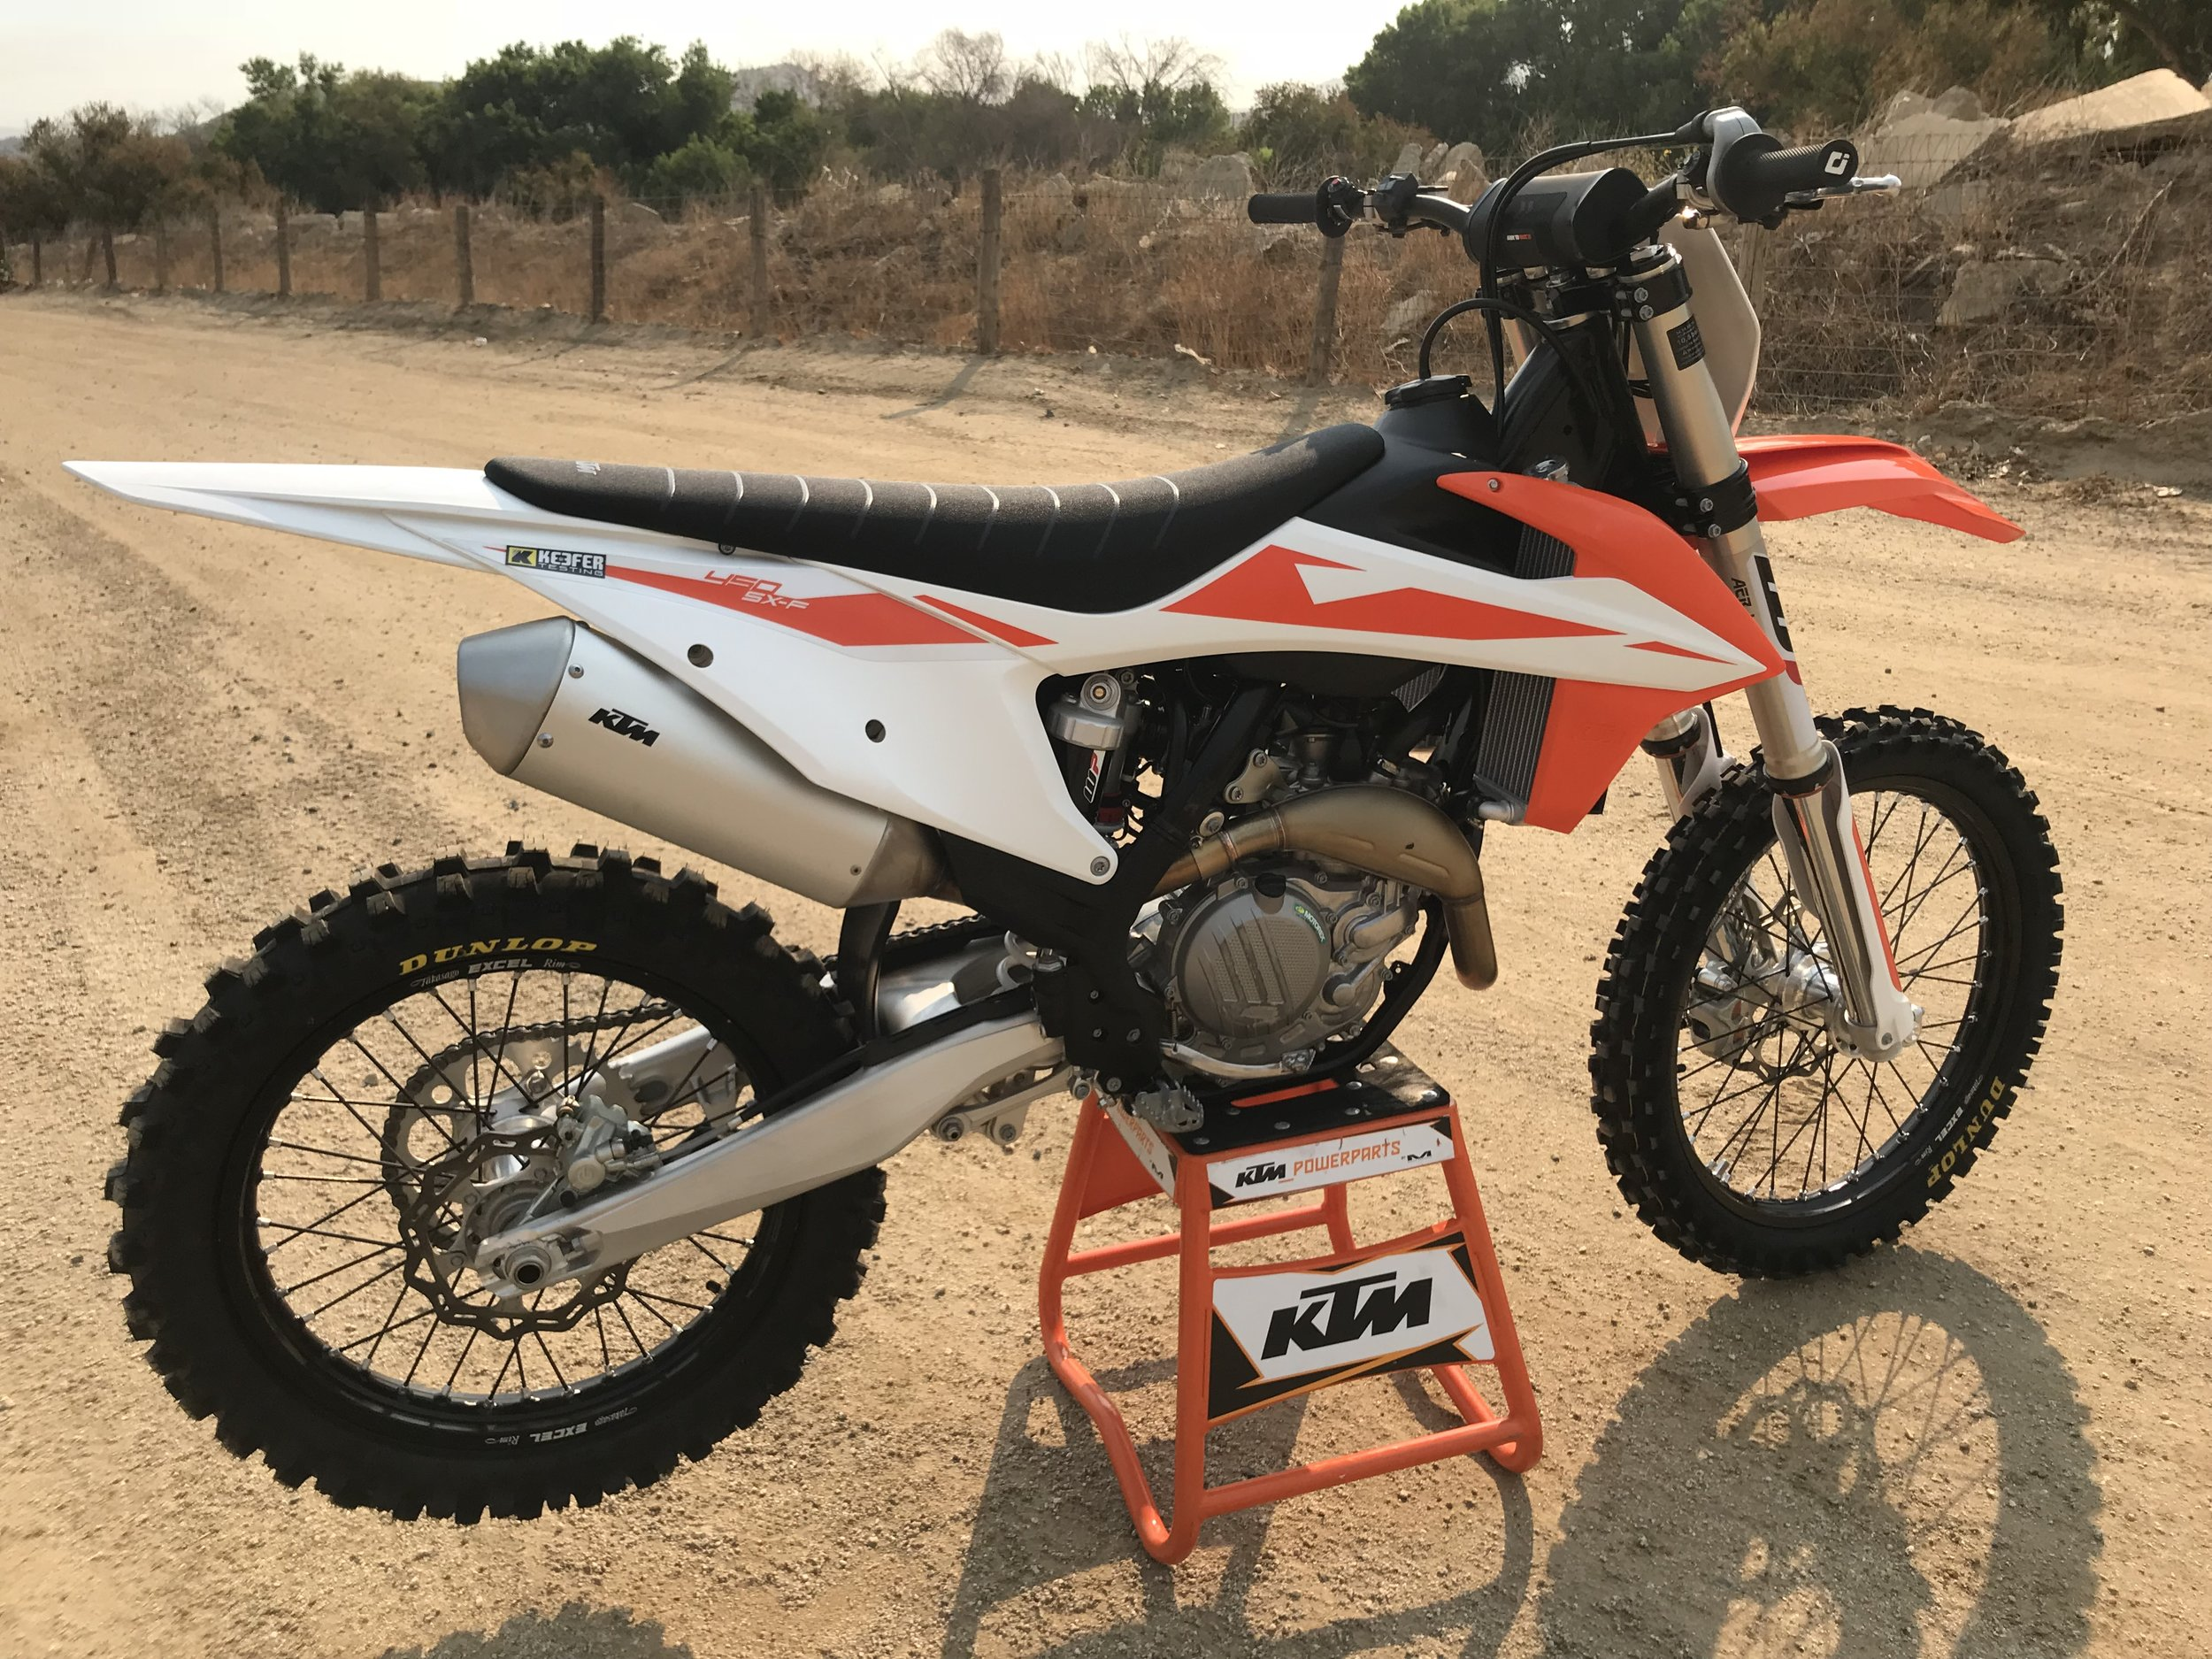 The KTM 450SX-F has more bottom end and RPM response than the Husqvarna, but lacked some compliance/comfort when the track got choppy and rough. The KTM still feels lightweight through corners and gives riders, that lack cornering technique, more confidence through ruts. The Neken handlebar is a little more rigid than that of the Pro Taper bar that is on the Husqvarna and that doesn't help on slap down landings. The engine character is smooth and linear thus helping/forcing riders carry more speed through corners. The WP/AER front fork lacks some small bump absorption, but once you break through that initial part of the travel, it is quite nice. The KTM 450 SX-F is one of my favorite bikes to ride with some minimal modifications done to it. The is how close all of these bikes really are! A little massaging here and there can make a fourth place bike a first place machine.